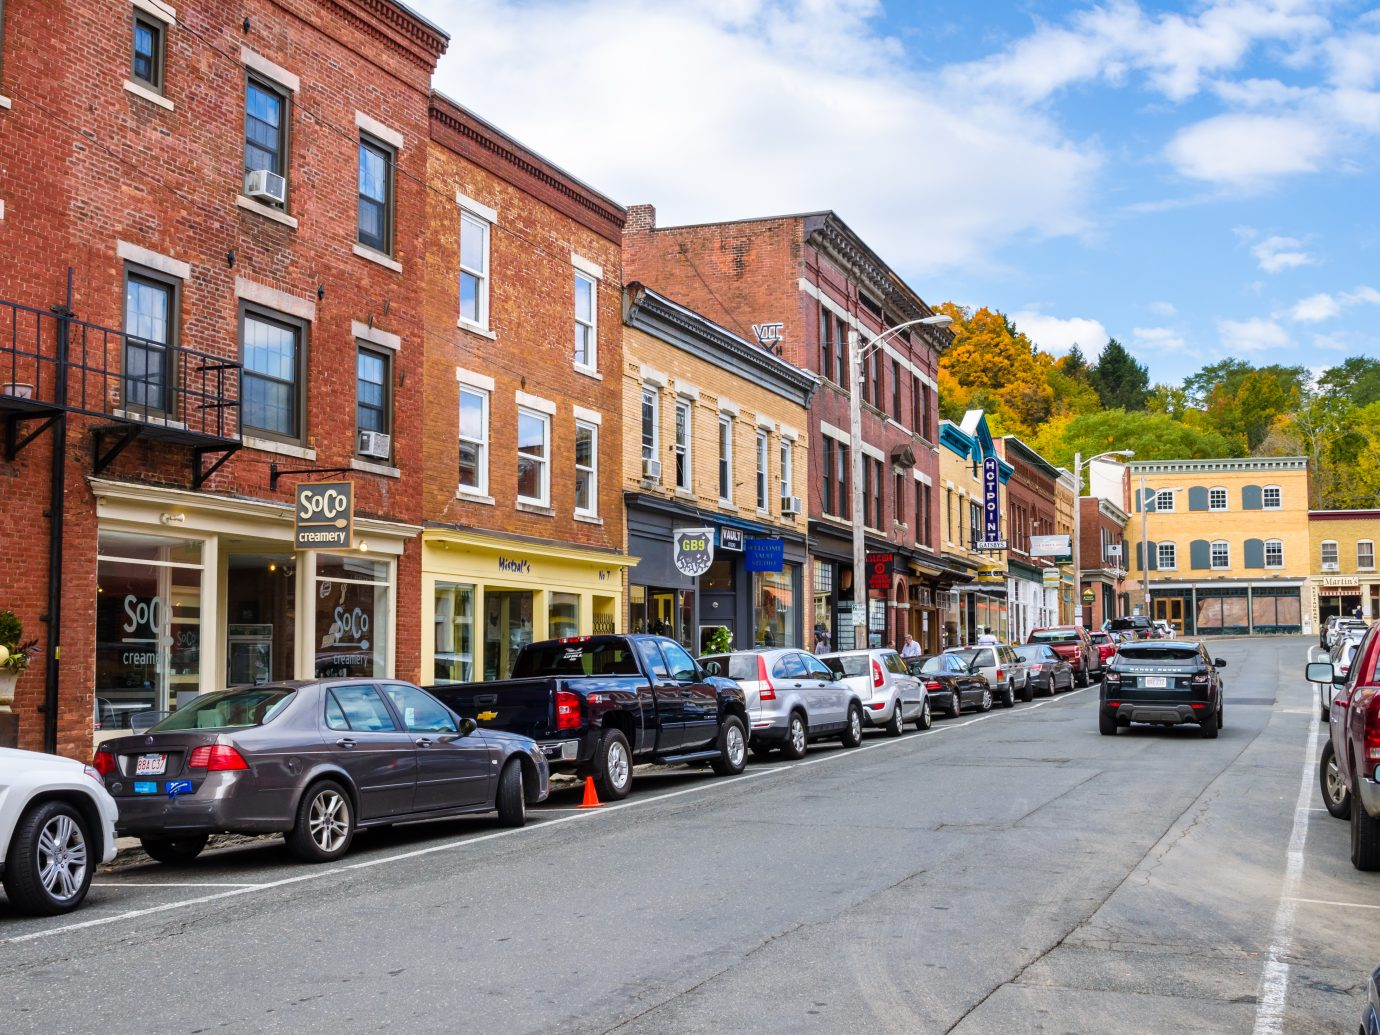 Great Barrington, MA - October 17, 2016: Traditional Brick Buildings with Colourful Shops and Restaurants along Railroad Street. Great Barrington, located within the valley of the Housatonic River, is both a summer resort and home to Ski Butternut.